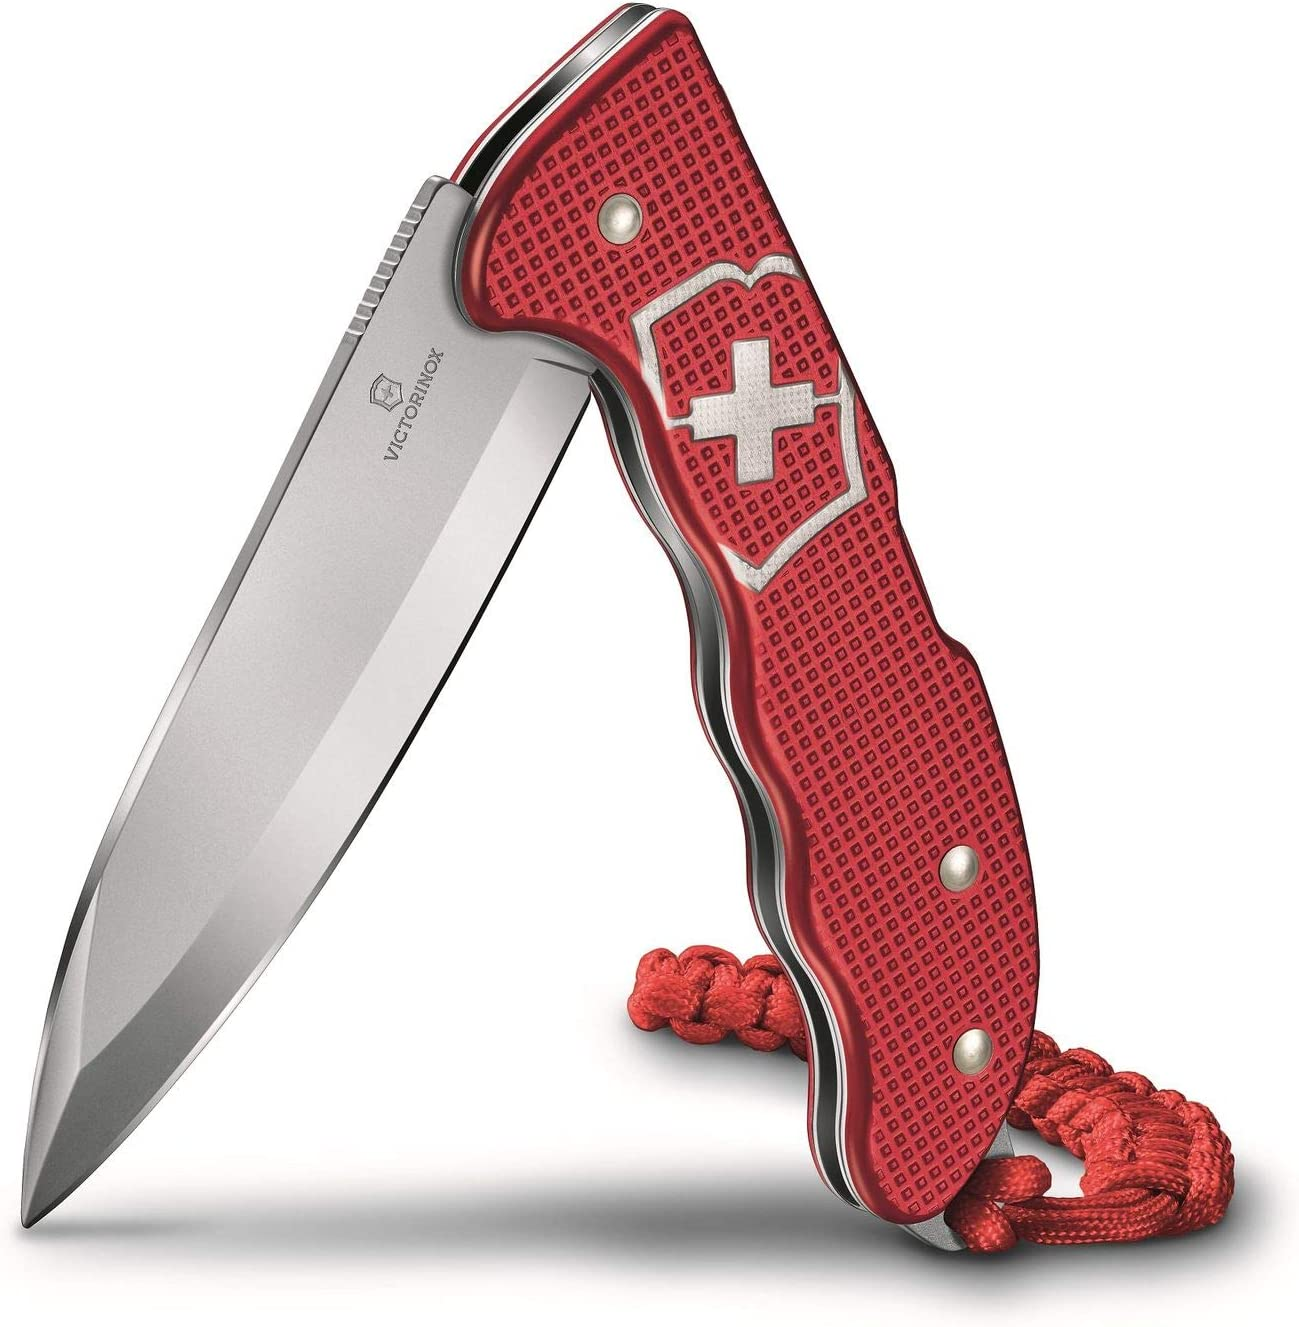 Victorinox Swiss Army Hunter Pro Alox Stainless Steel Pocket Knife with Clip Paracord